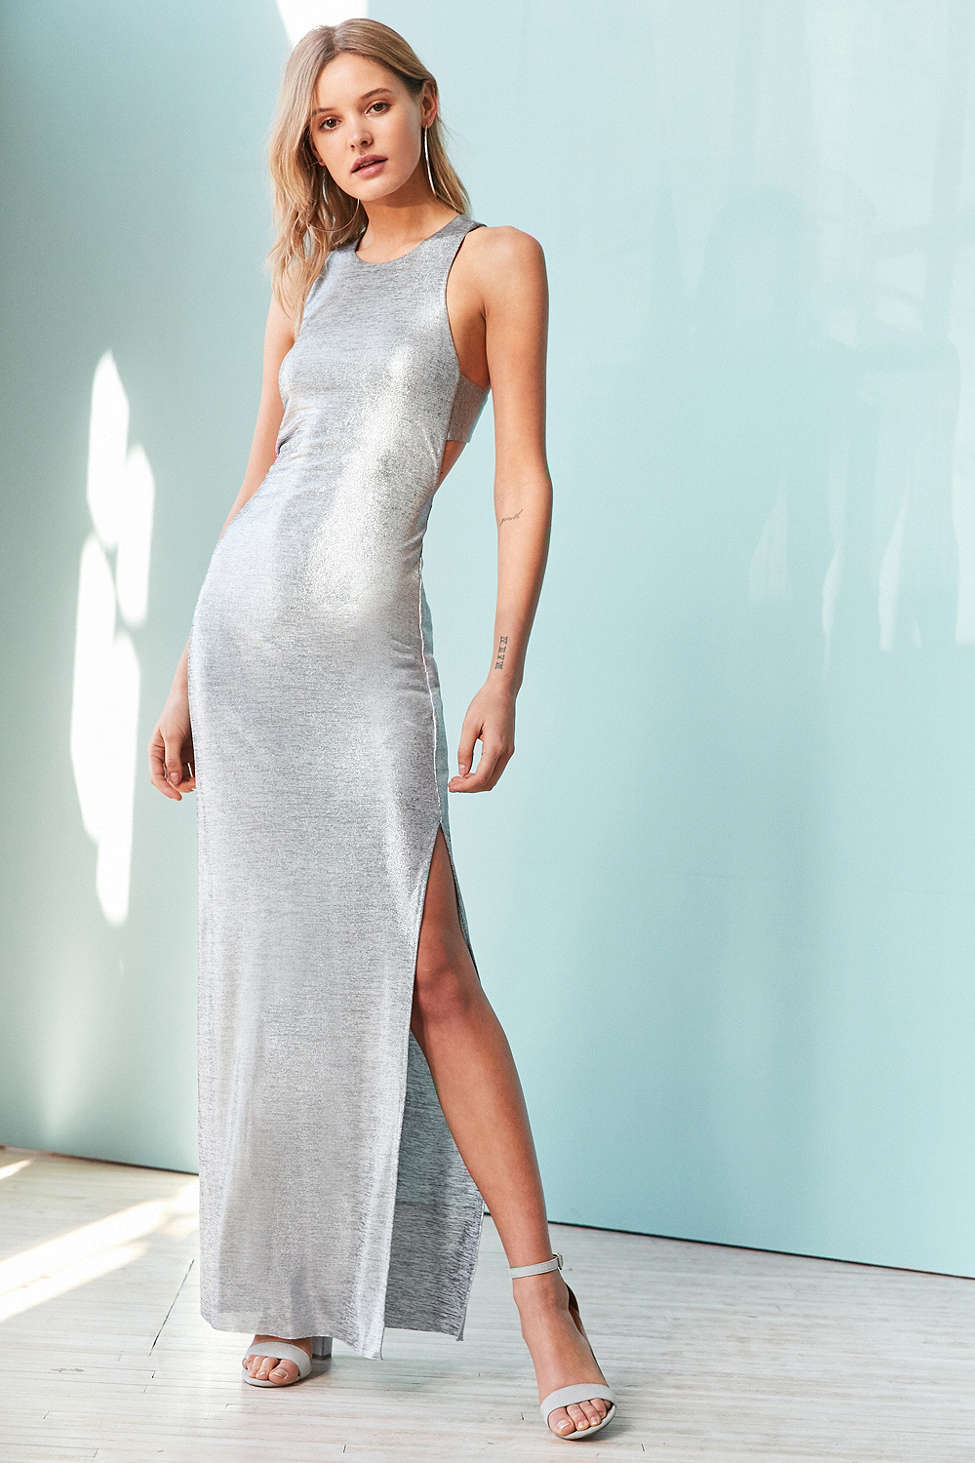 Affordable Prom Dresses Under 250 Dollars Cute Cheap